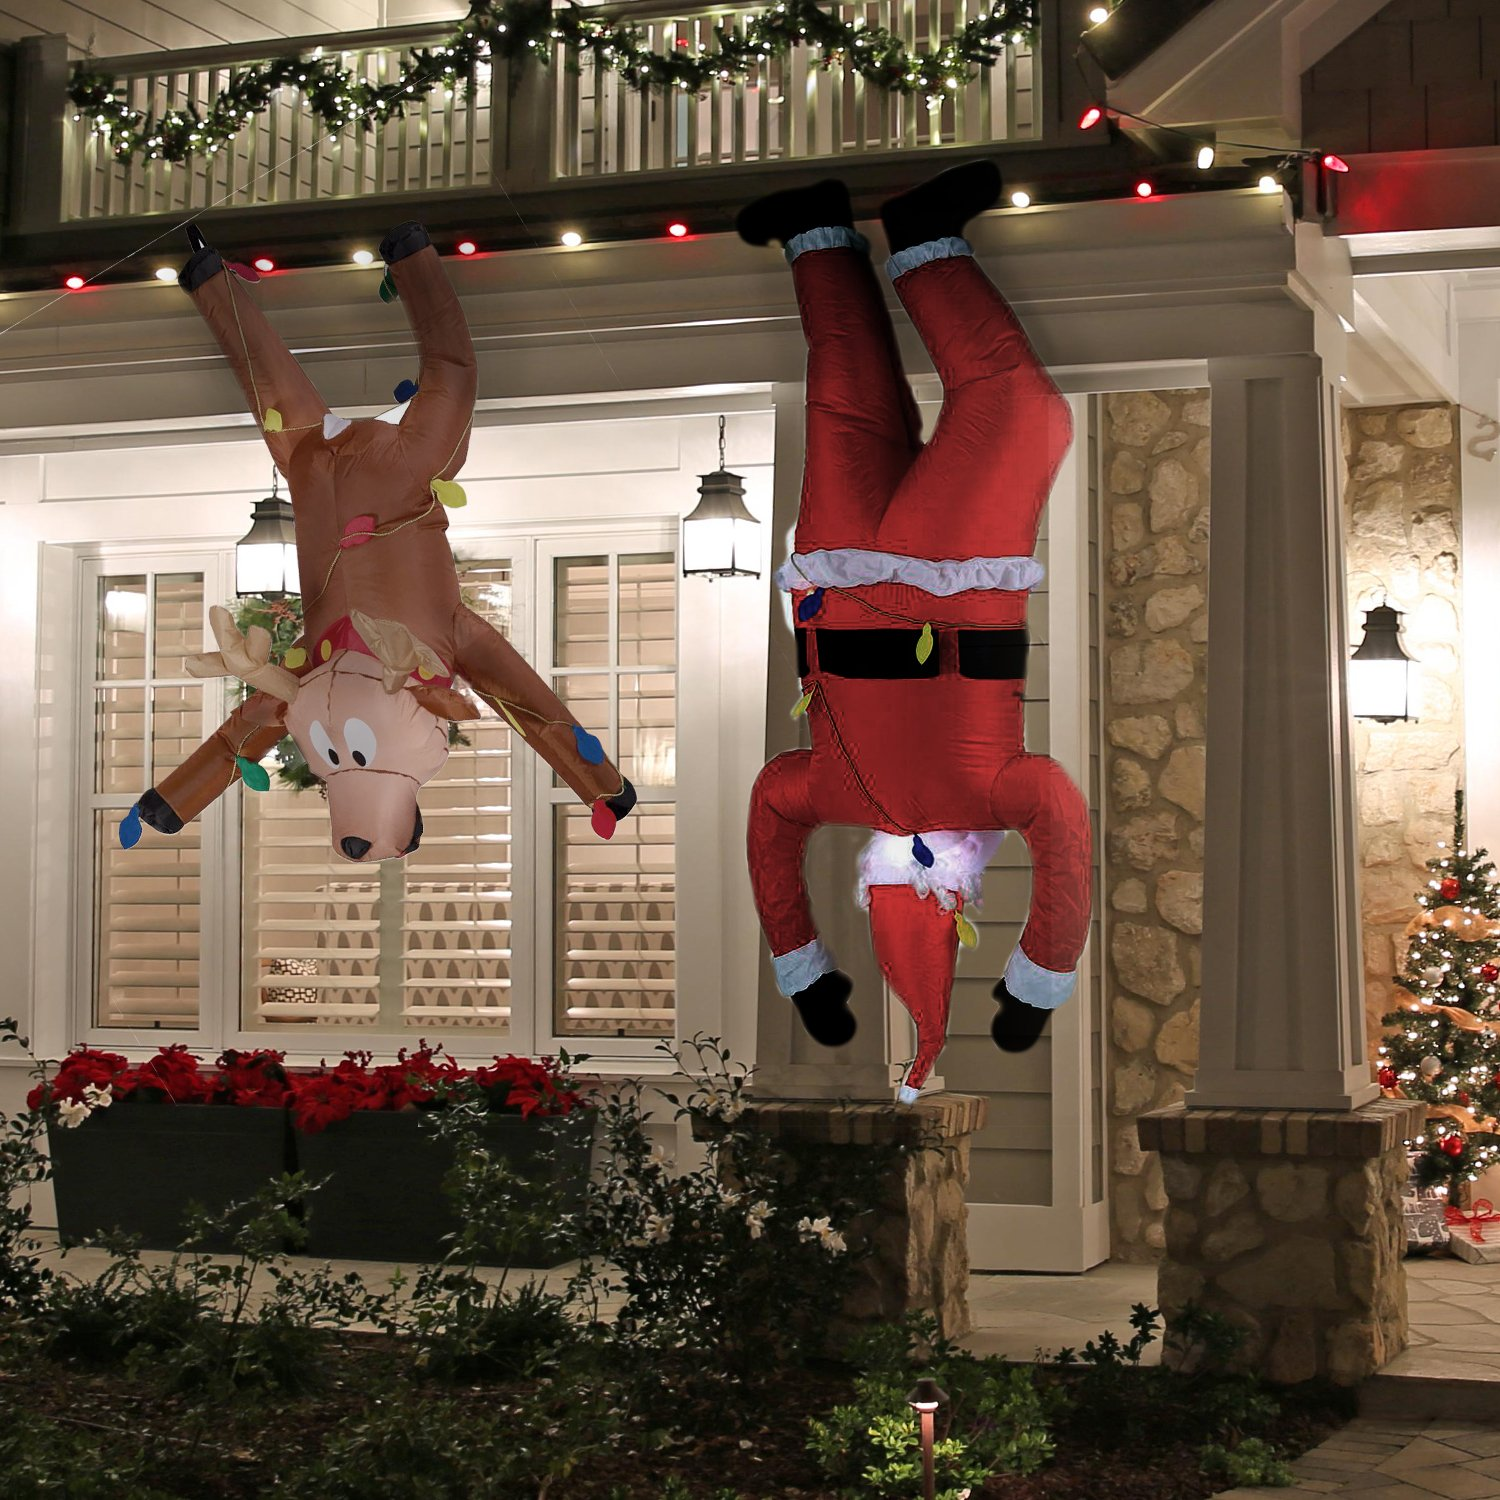 Inflatable Hanging Santa 6.5ft and Reindeer 4ft - Set of 2 - Fun Airblown for Christmas by Home Accents Holiday